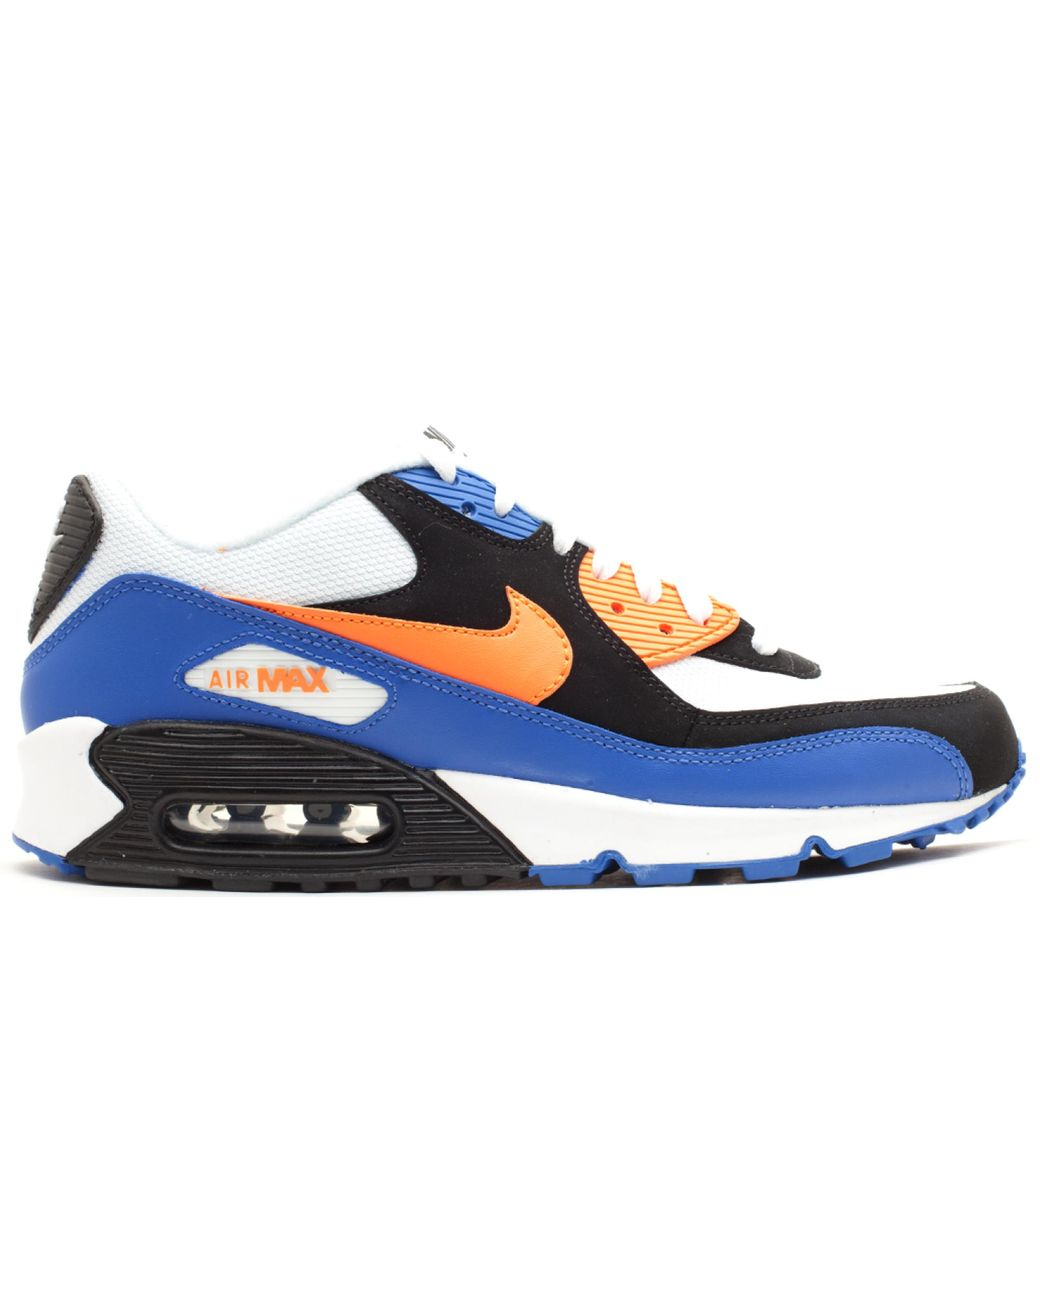 lowest price where to buy new high quality Air Max 90 Nyc Bright Mandarin